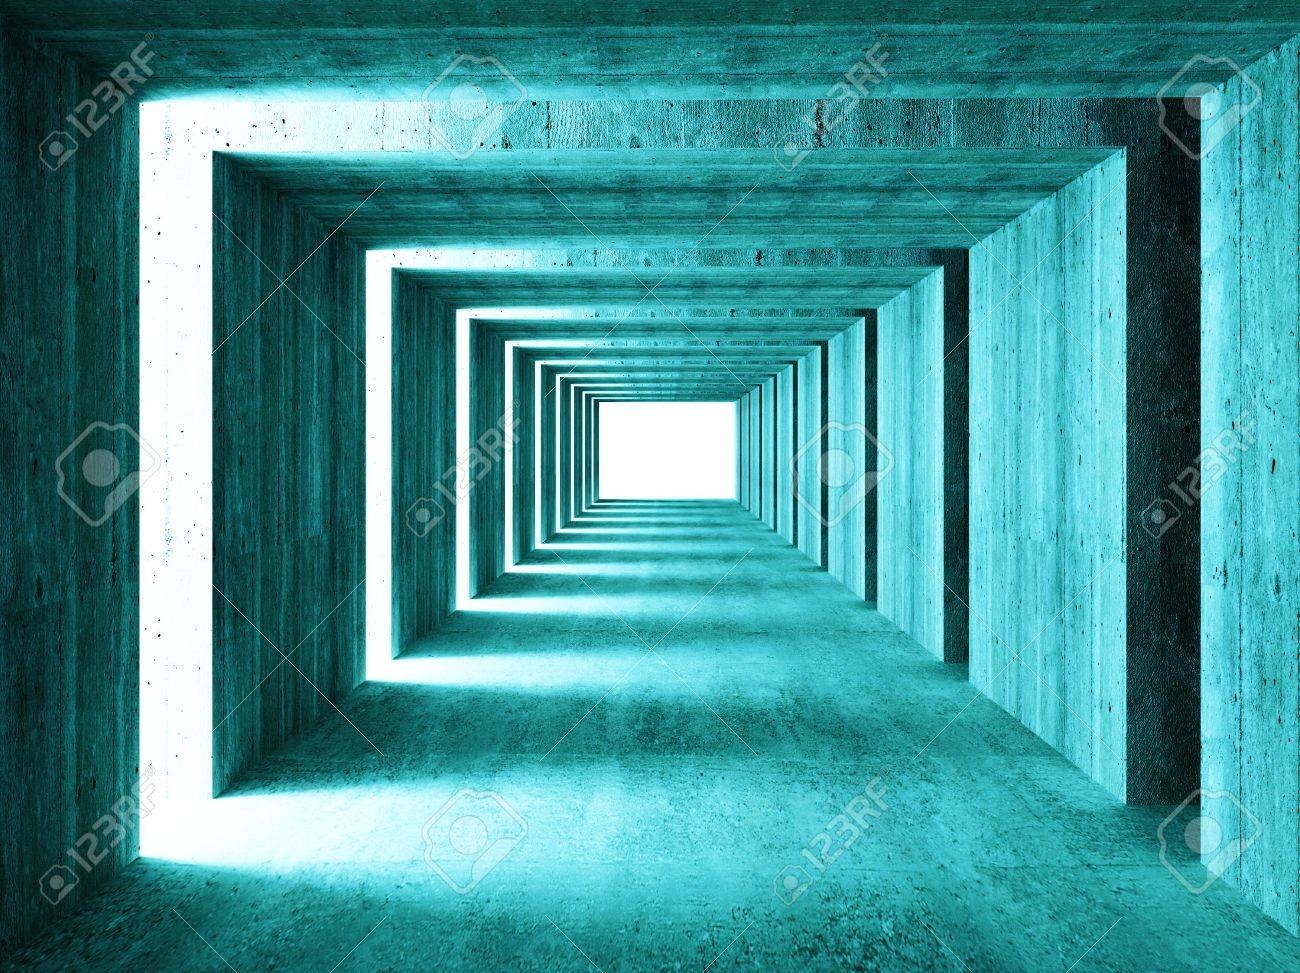 fine image of 3d concretet tunnel abstract background Stock Photo - 3683769